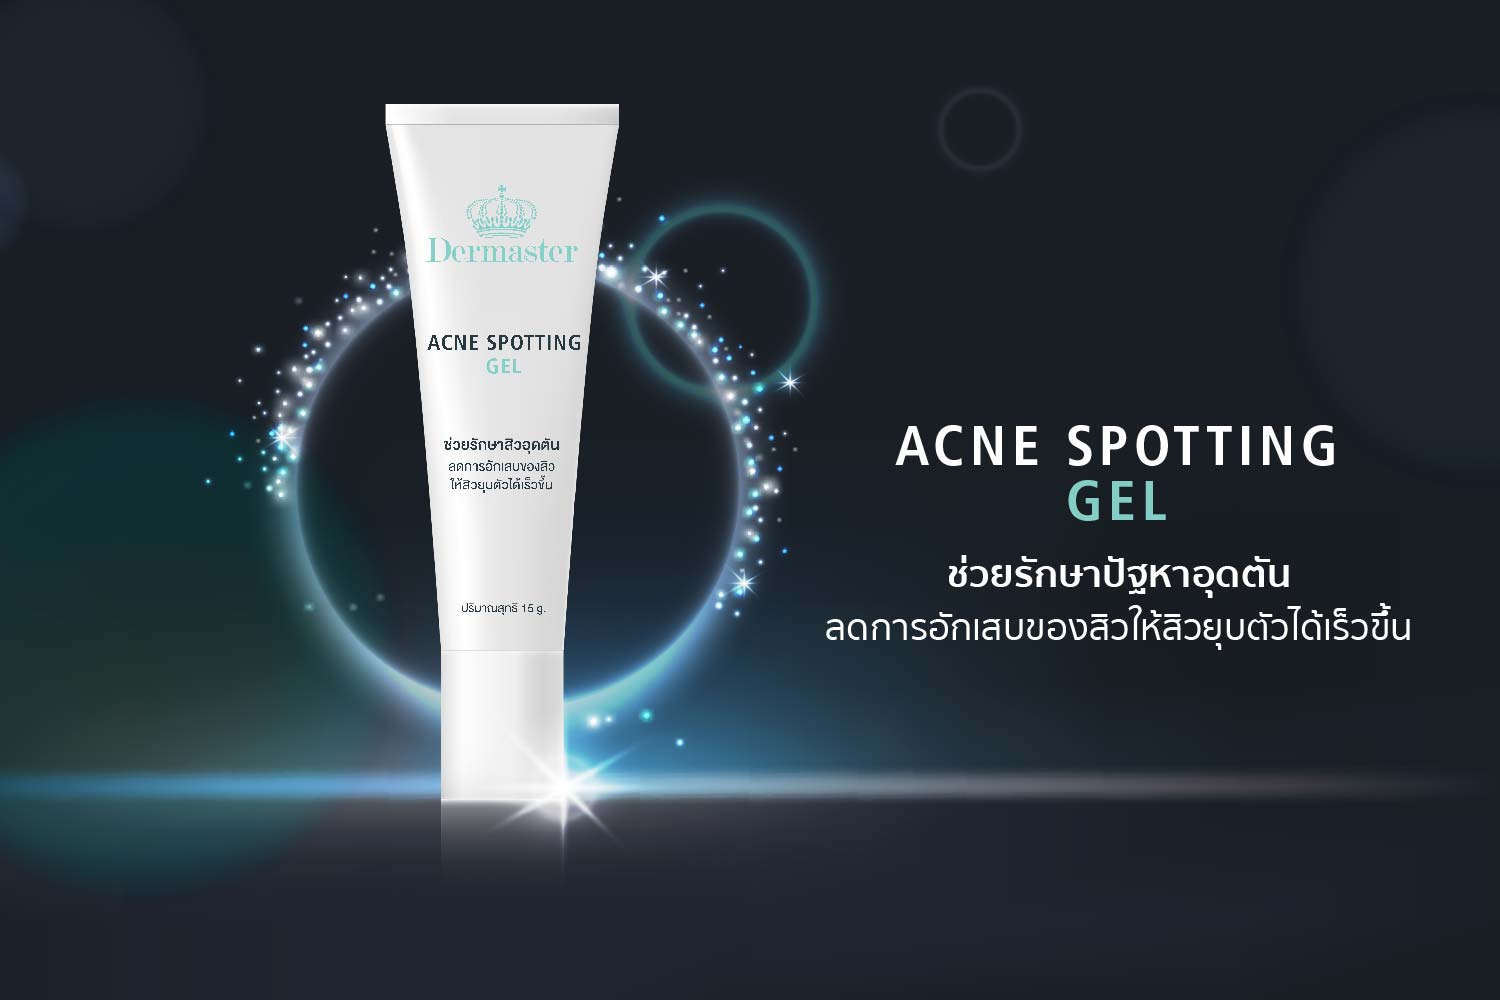 skin-care-acne-spotting-gel-1